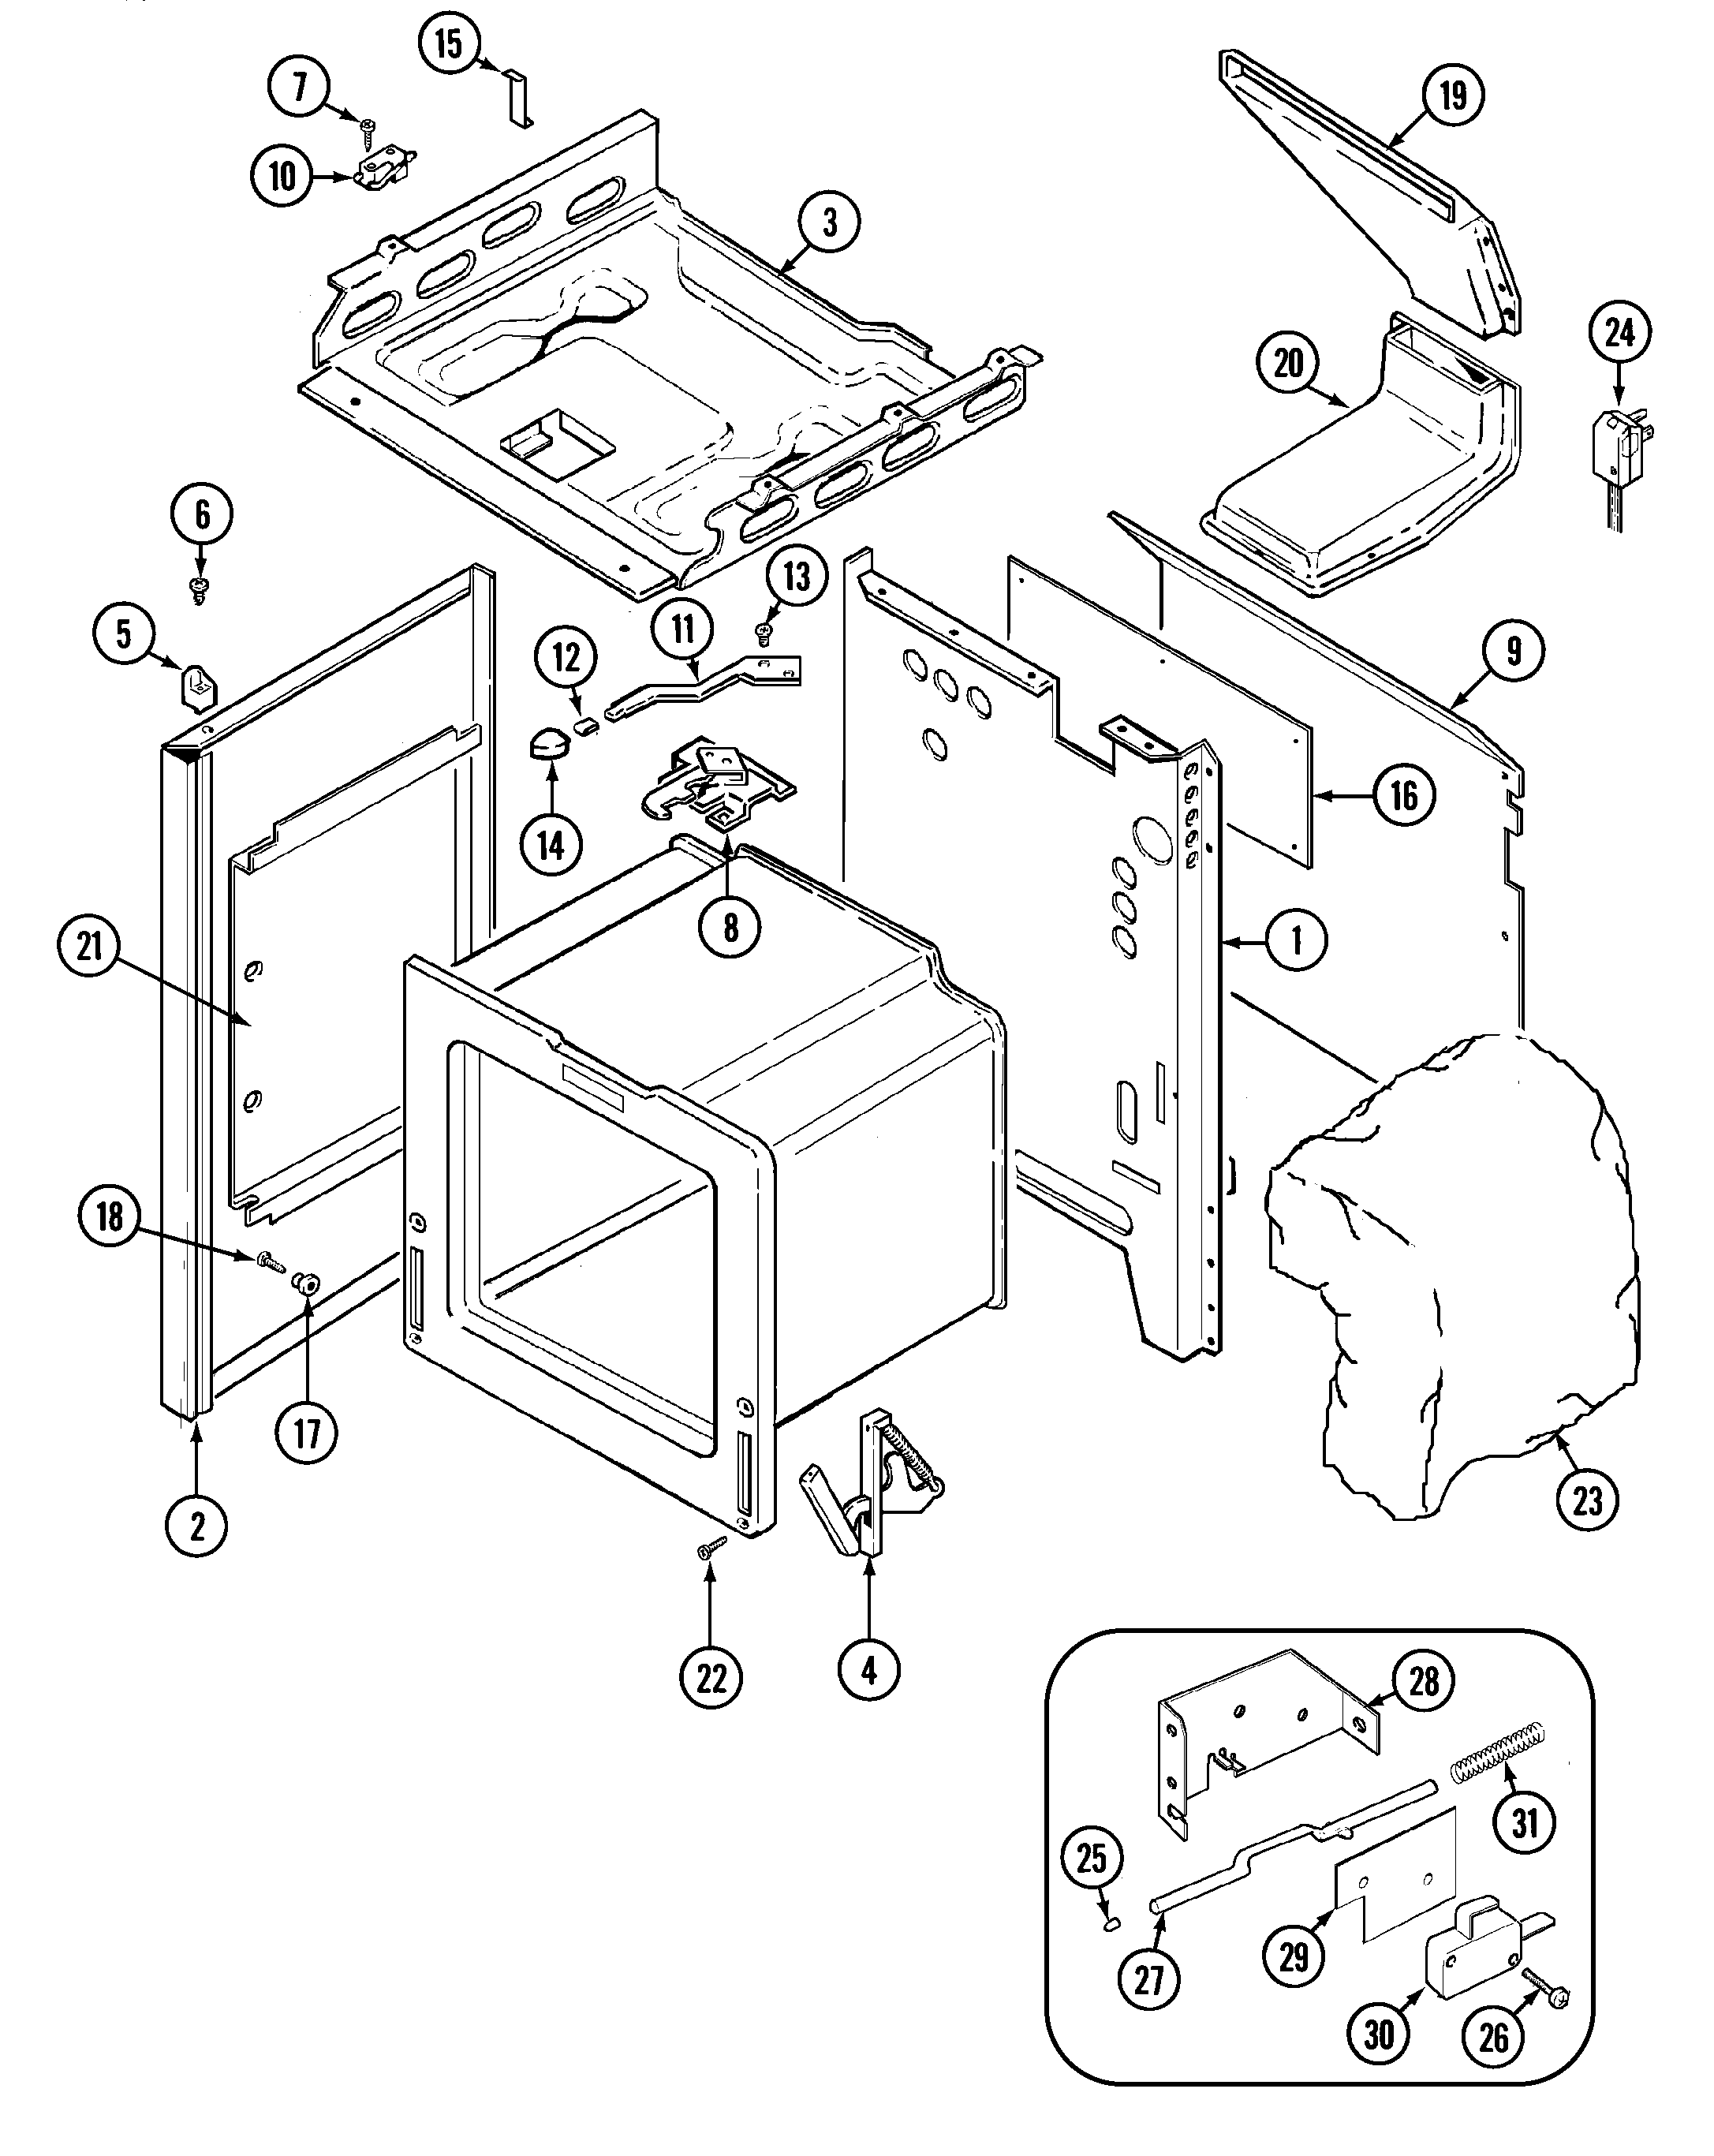 Maytag Crg9700cam Timer Stove Clocks And Appliance Timers Wiring Schematics Range Body Parts Diagram